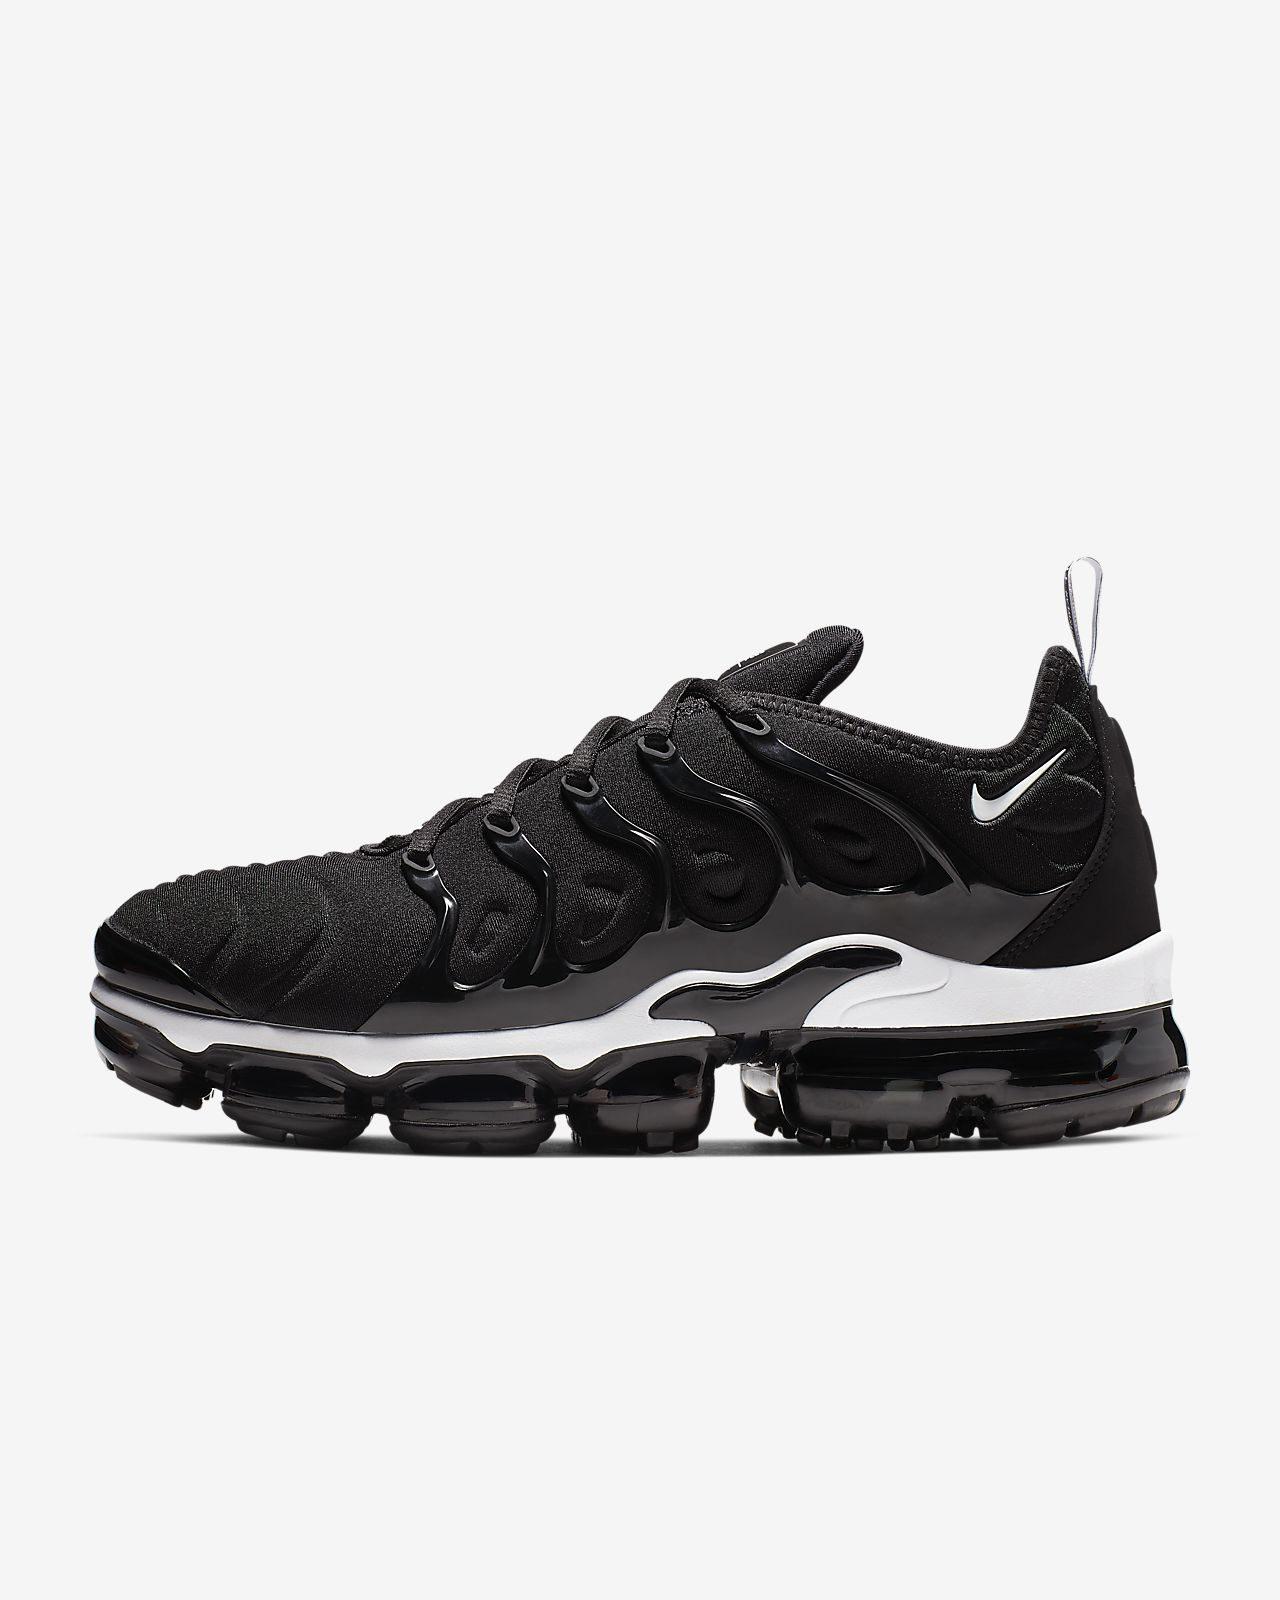 a063633583a0 Nike Air VaporMax Plus Men s Shoe. Nike.com GB